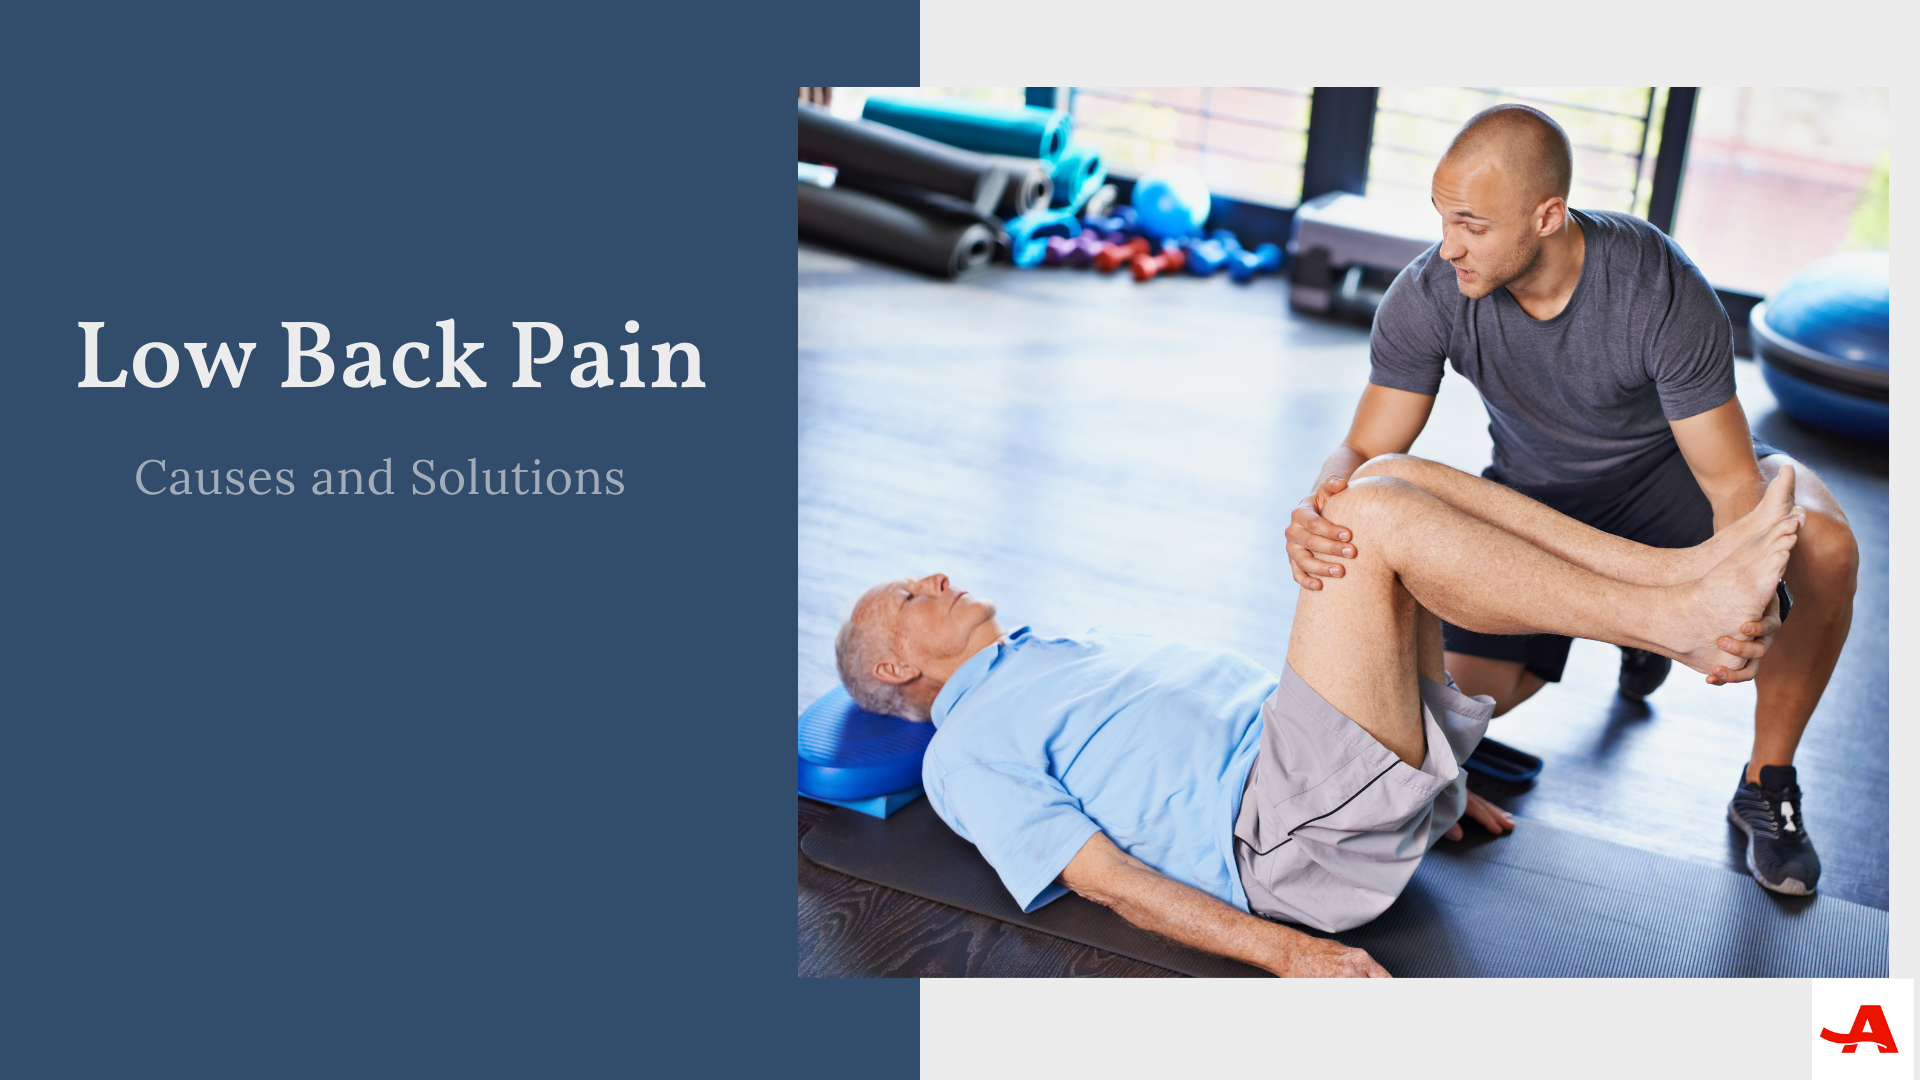 Low Back Pain - Promo Image.png